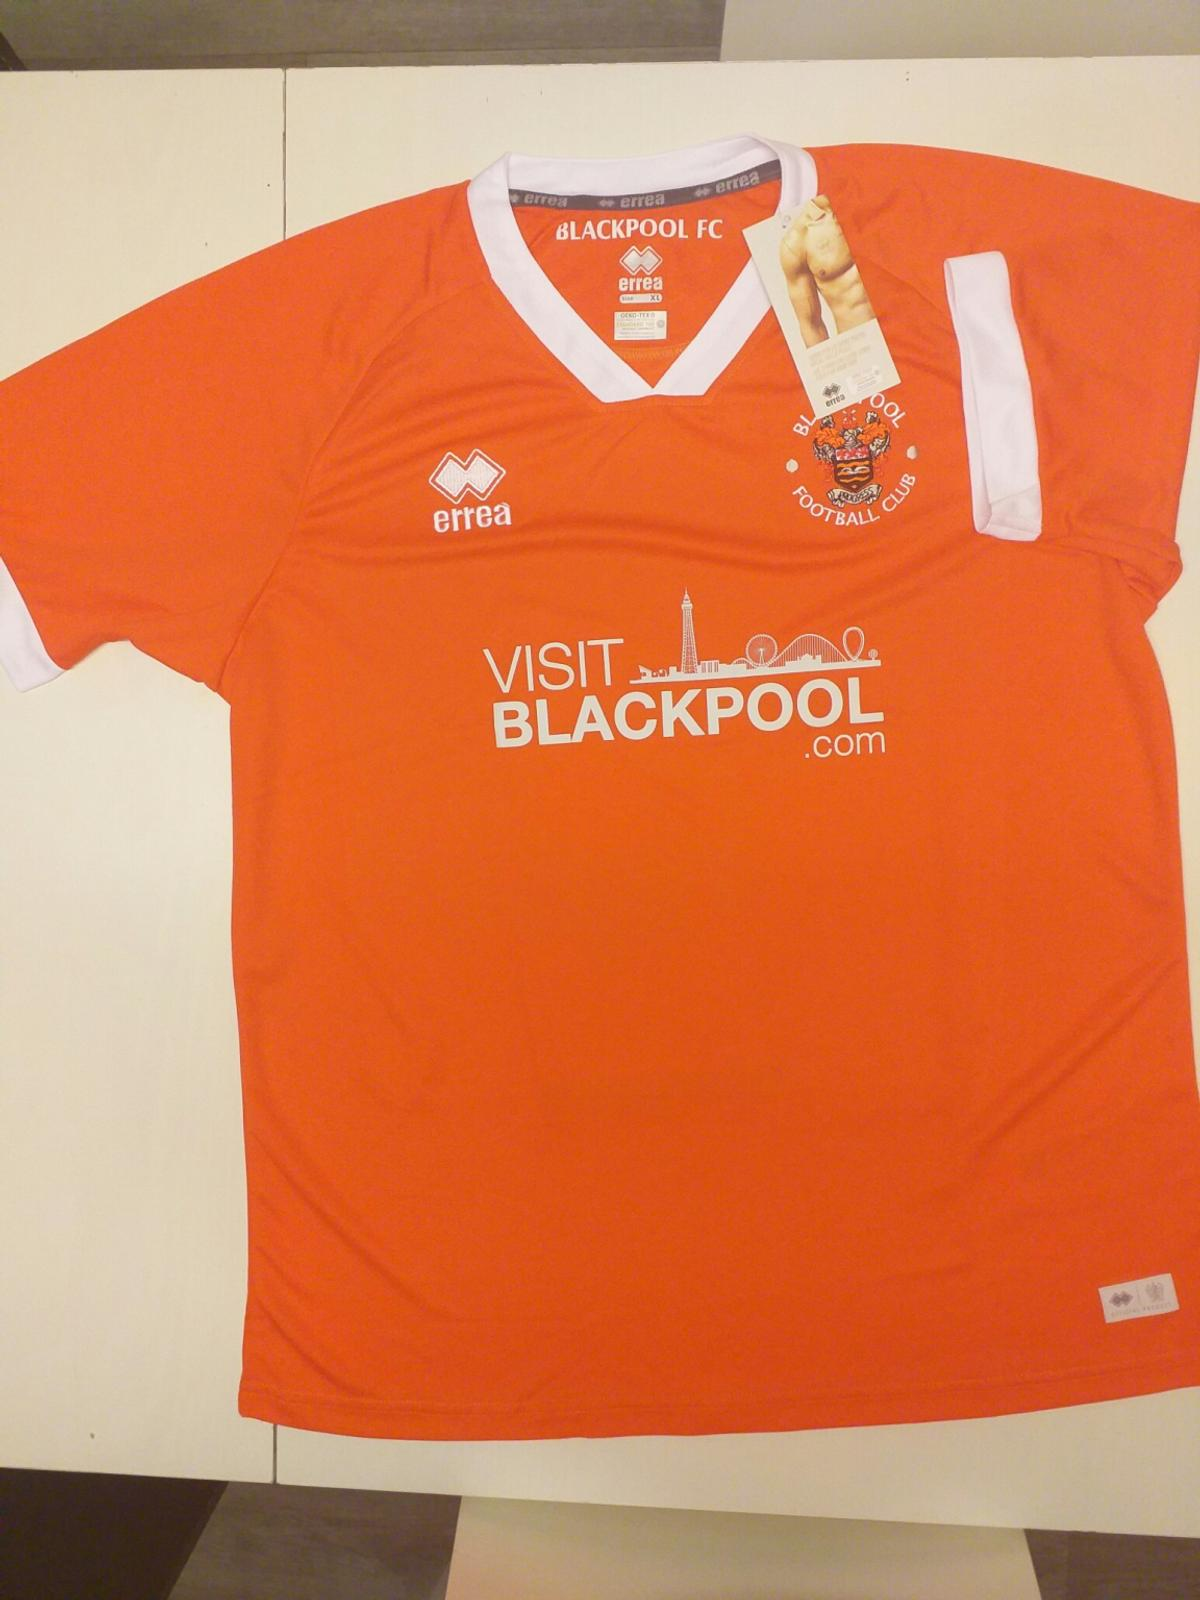 Blackpool Fc 2019 Home Kit In Fy1 Bispham For 20 00 For Sale Shpock